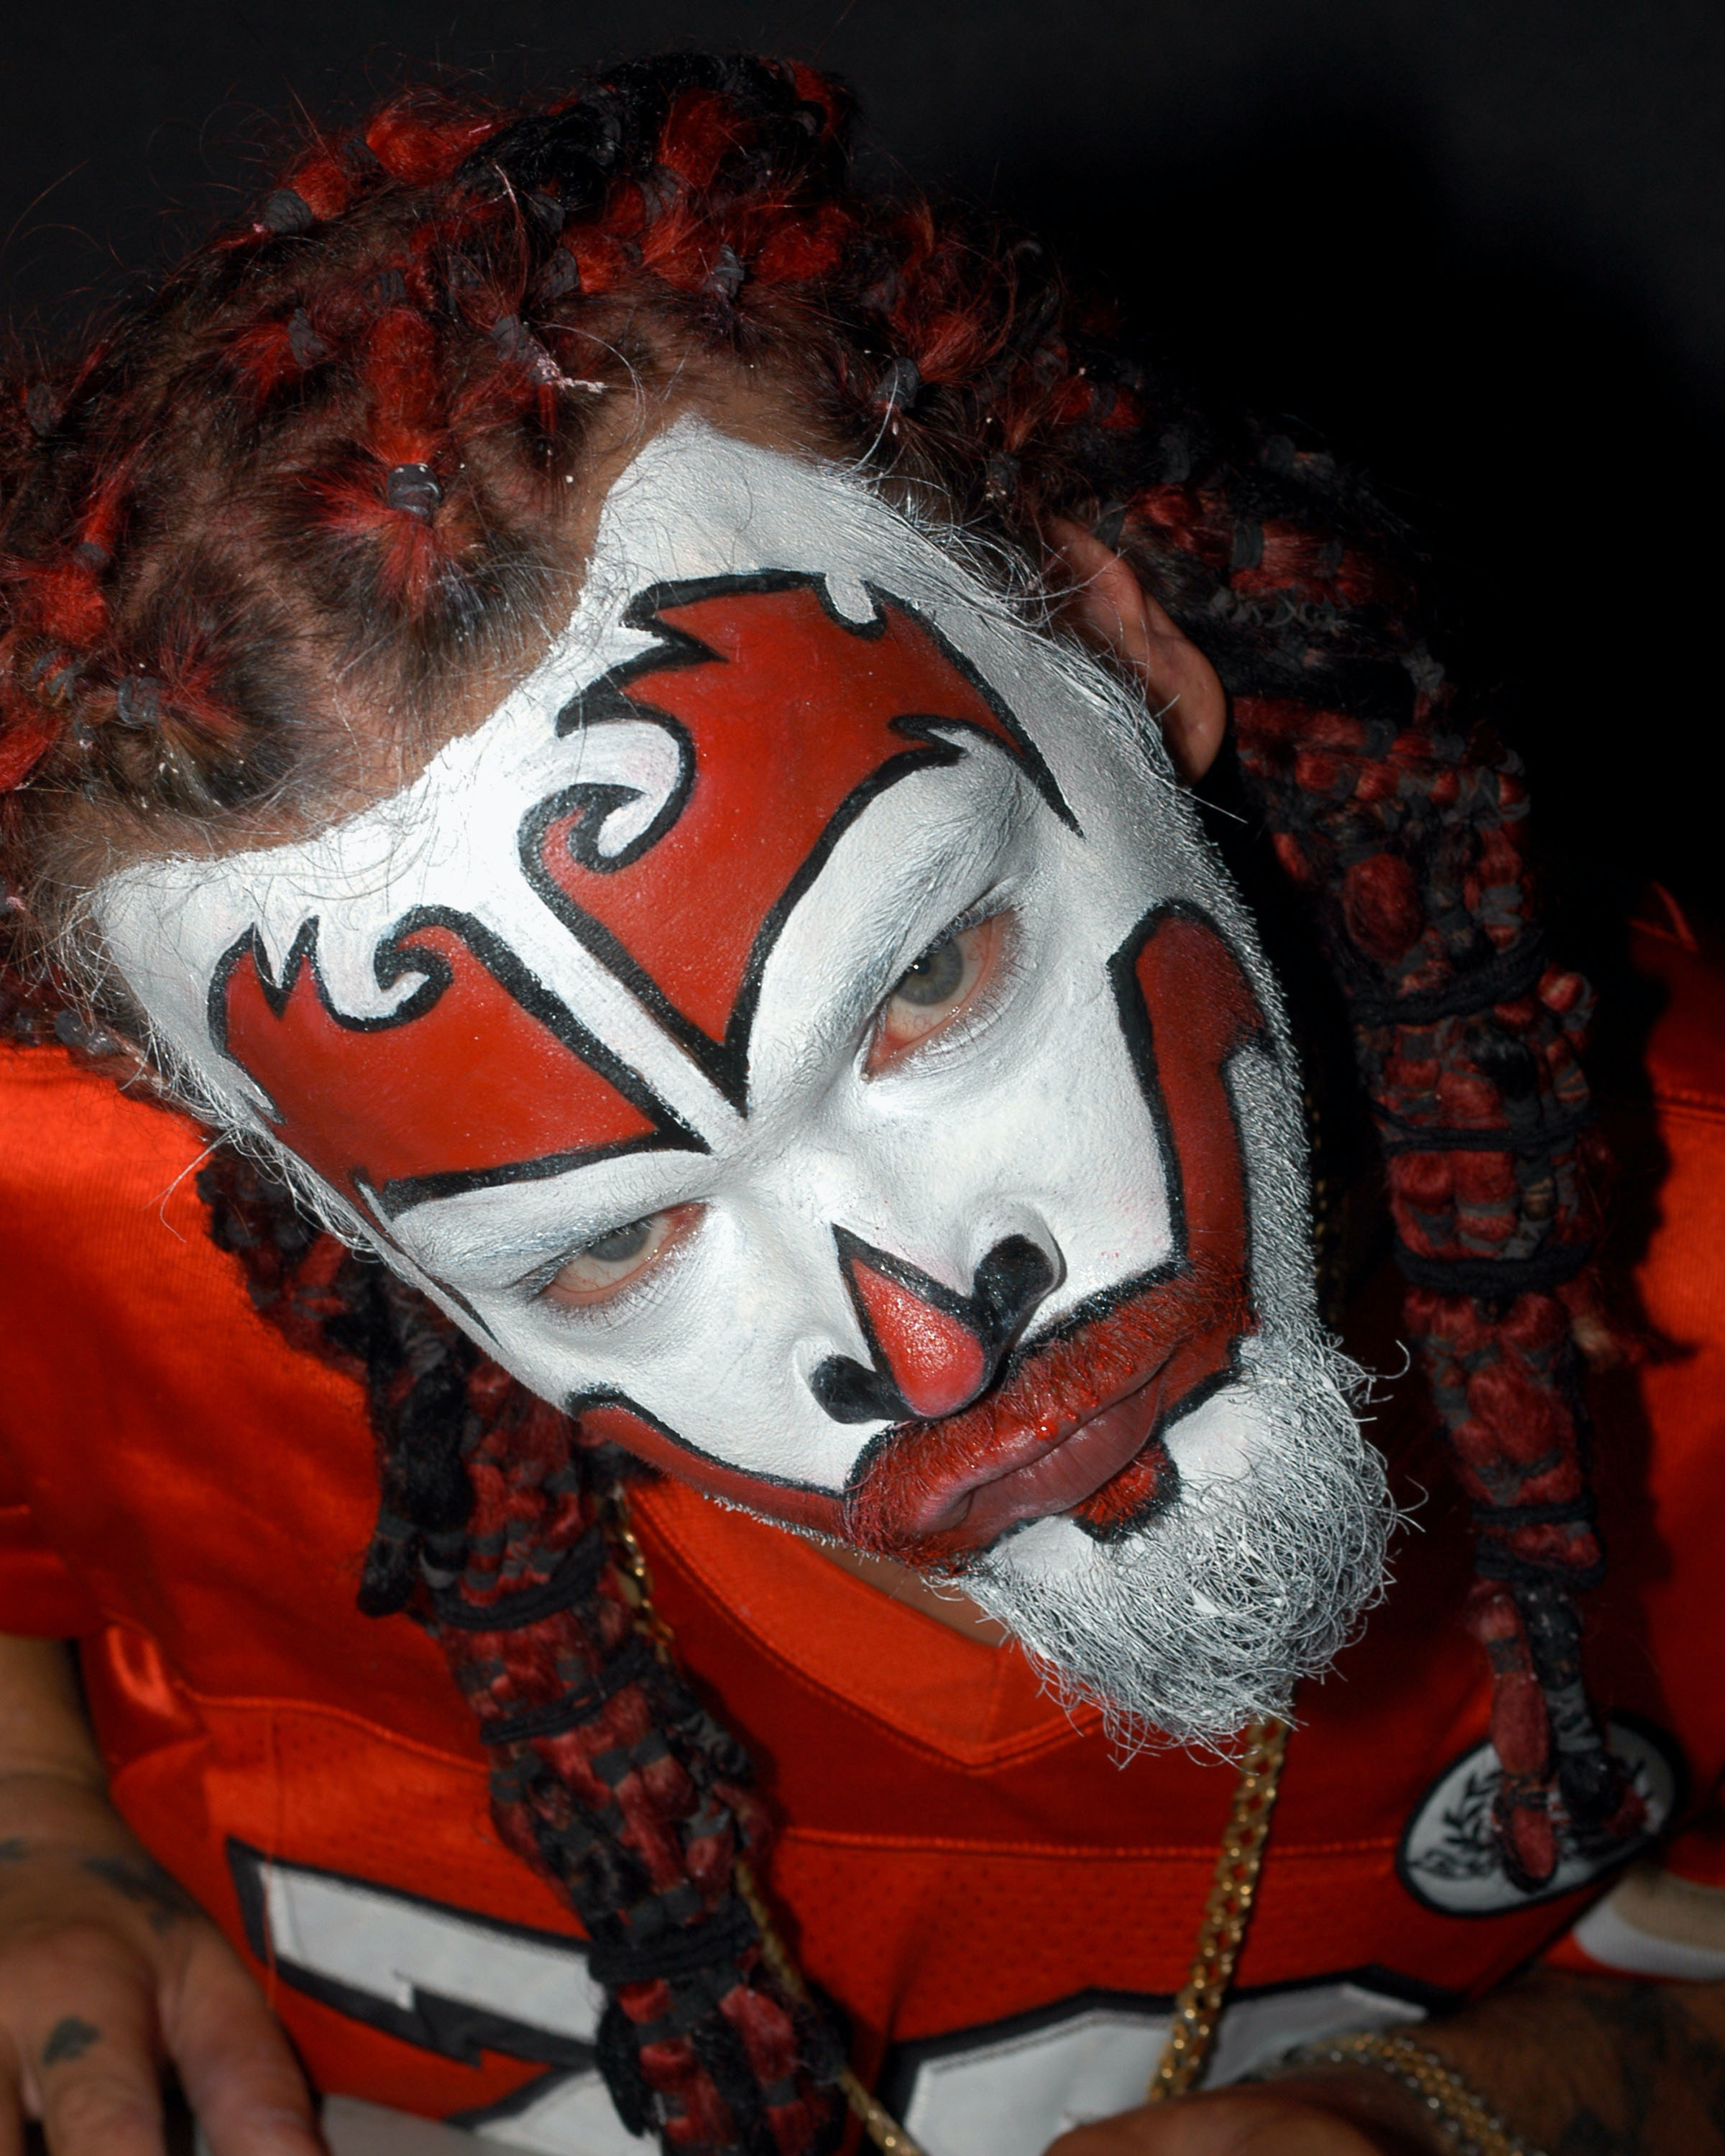 Here Are the Best Images From Today's Juggalo March in Washington